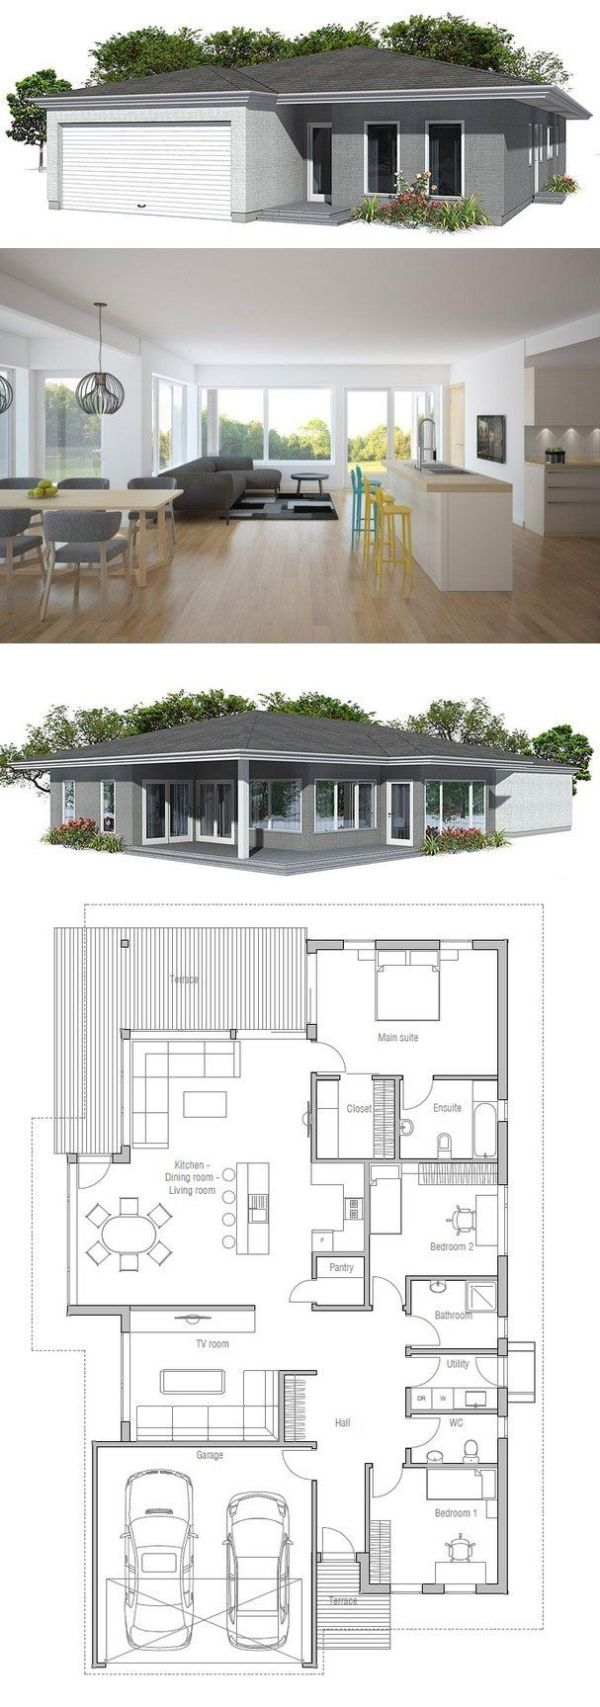 House Plan from ConceptHomecom by terri 54